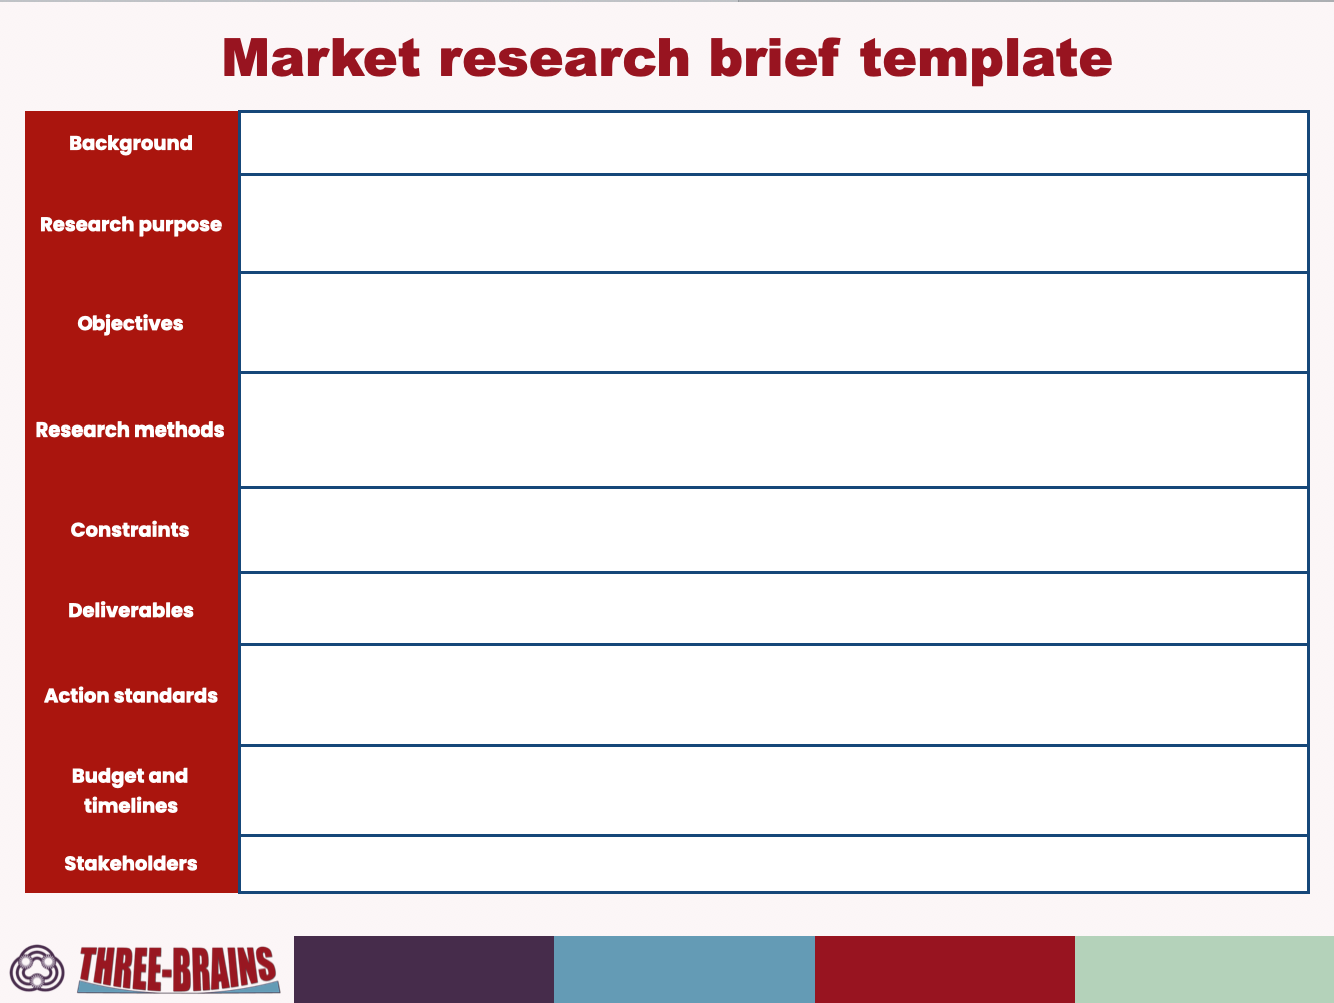 Market Research Brief Template Market Research Research Methods Marketing